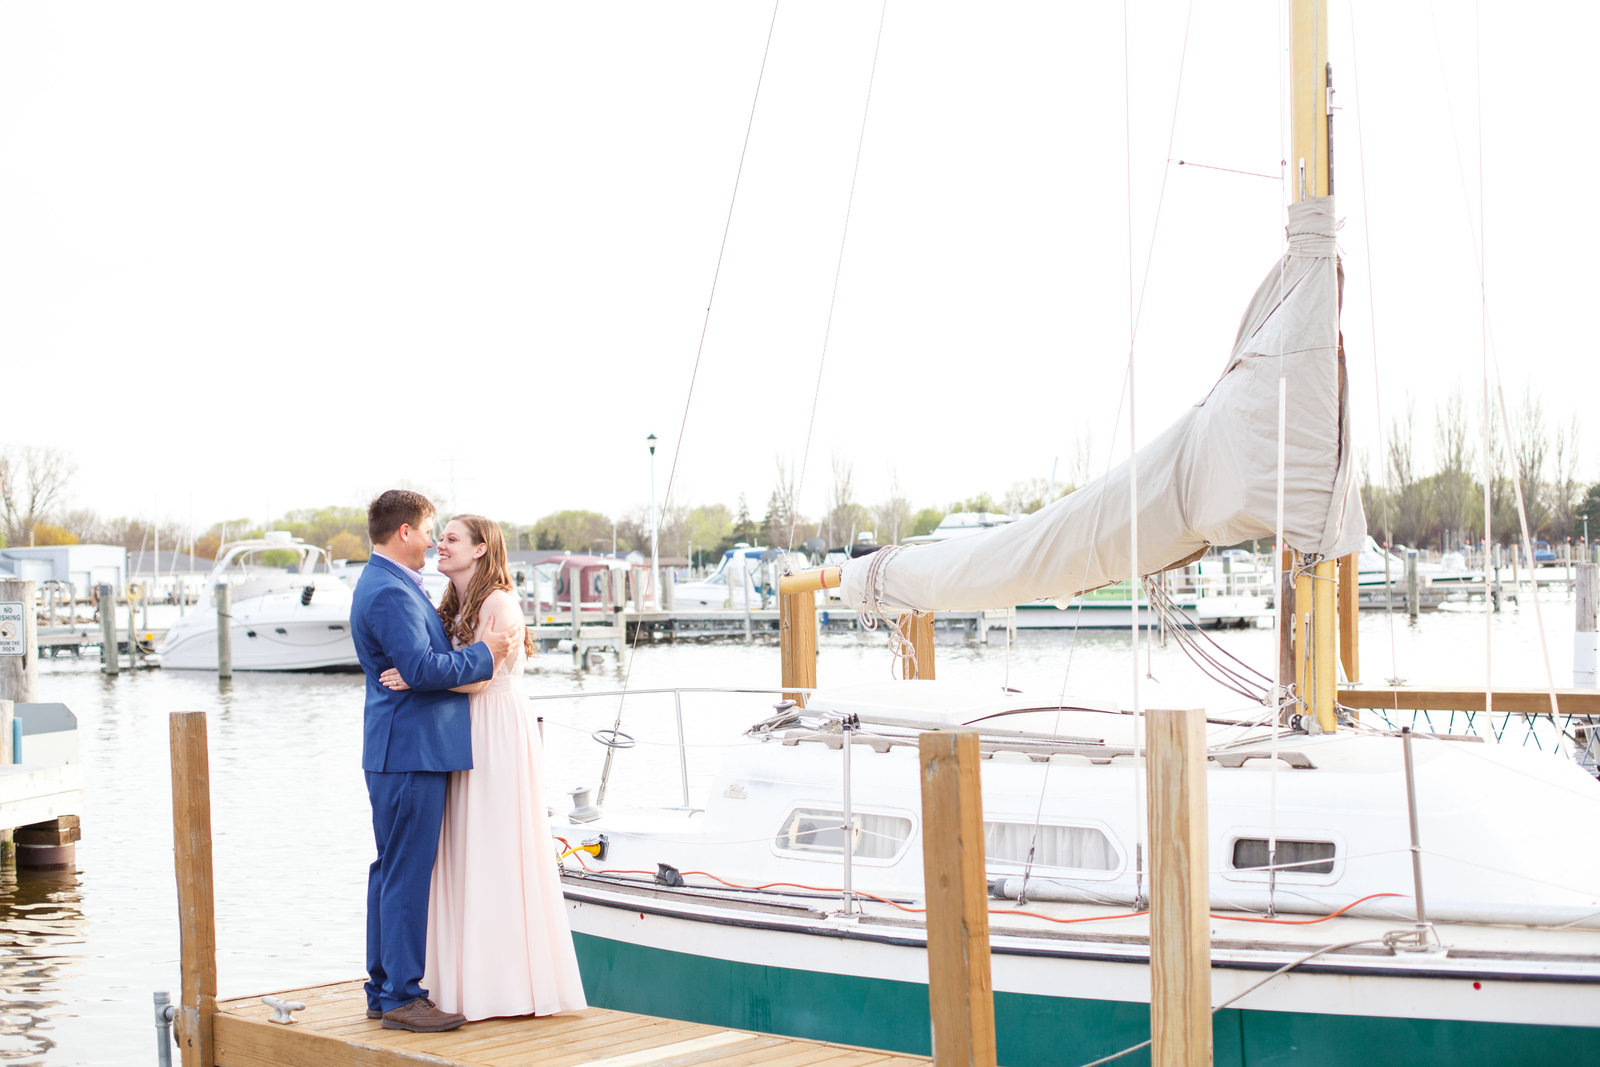 authenticweddingphotography-2